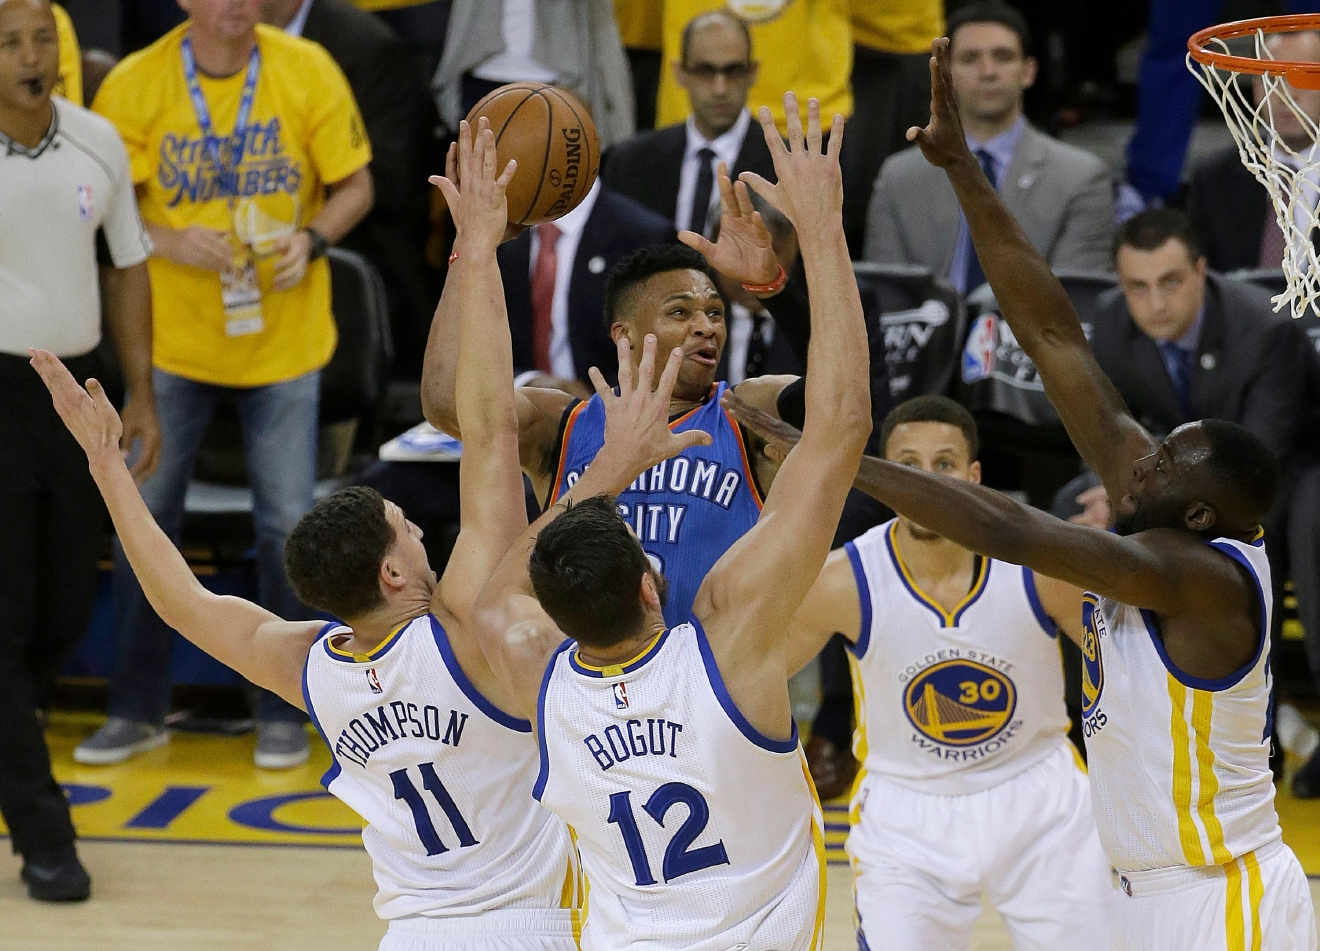 Oklahoma City Thunder guard Russell Westbrook, center, shoots between Golden State Warriors guard Klay Thompson (11), center Andrew Bogut (12) and guard Stephen Curry (30) and forward Draymond Green during the first half of Game 5 of the NBA basketball Western Conference finals in Oakland, Calif., Thursday, May 26, 2016. (AP Photo/Jeff Chiu)